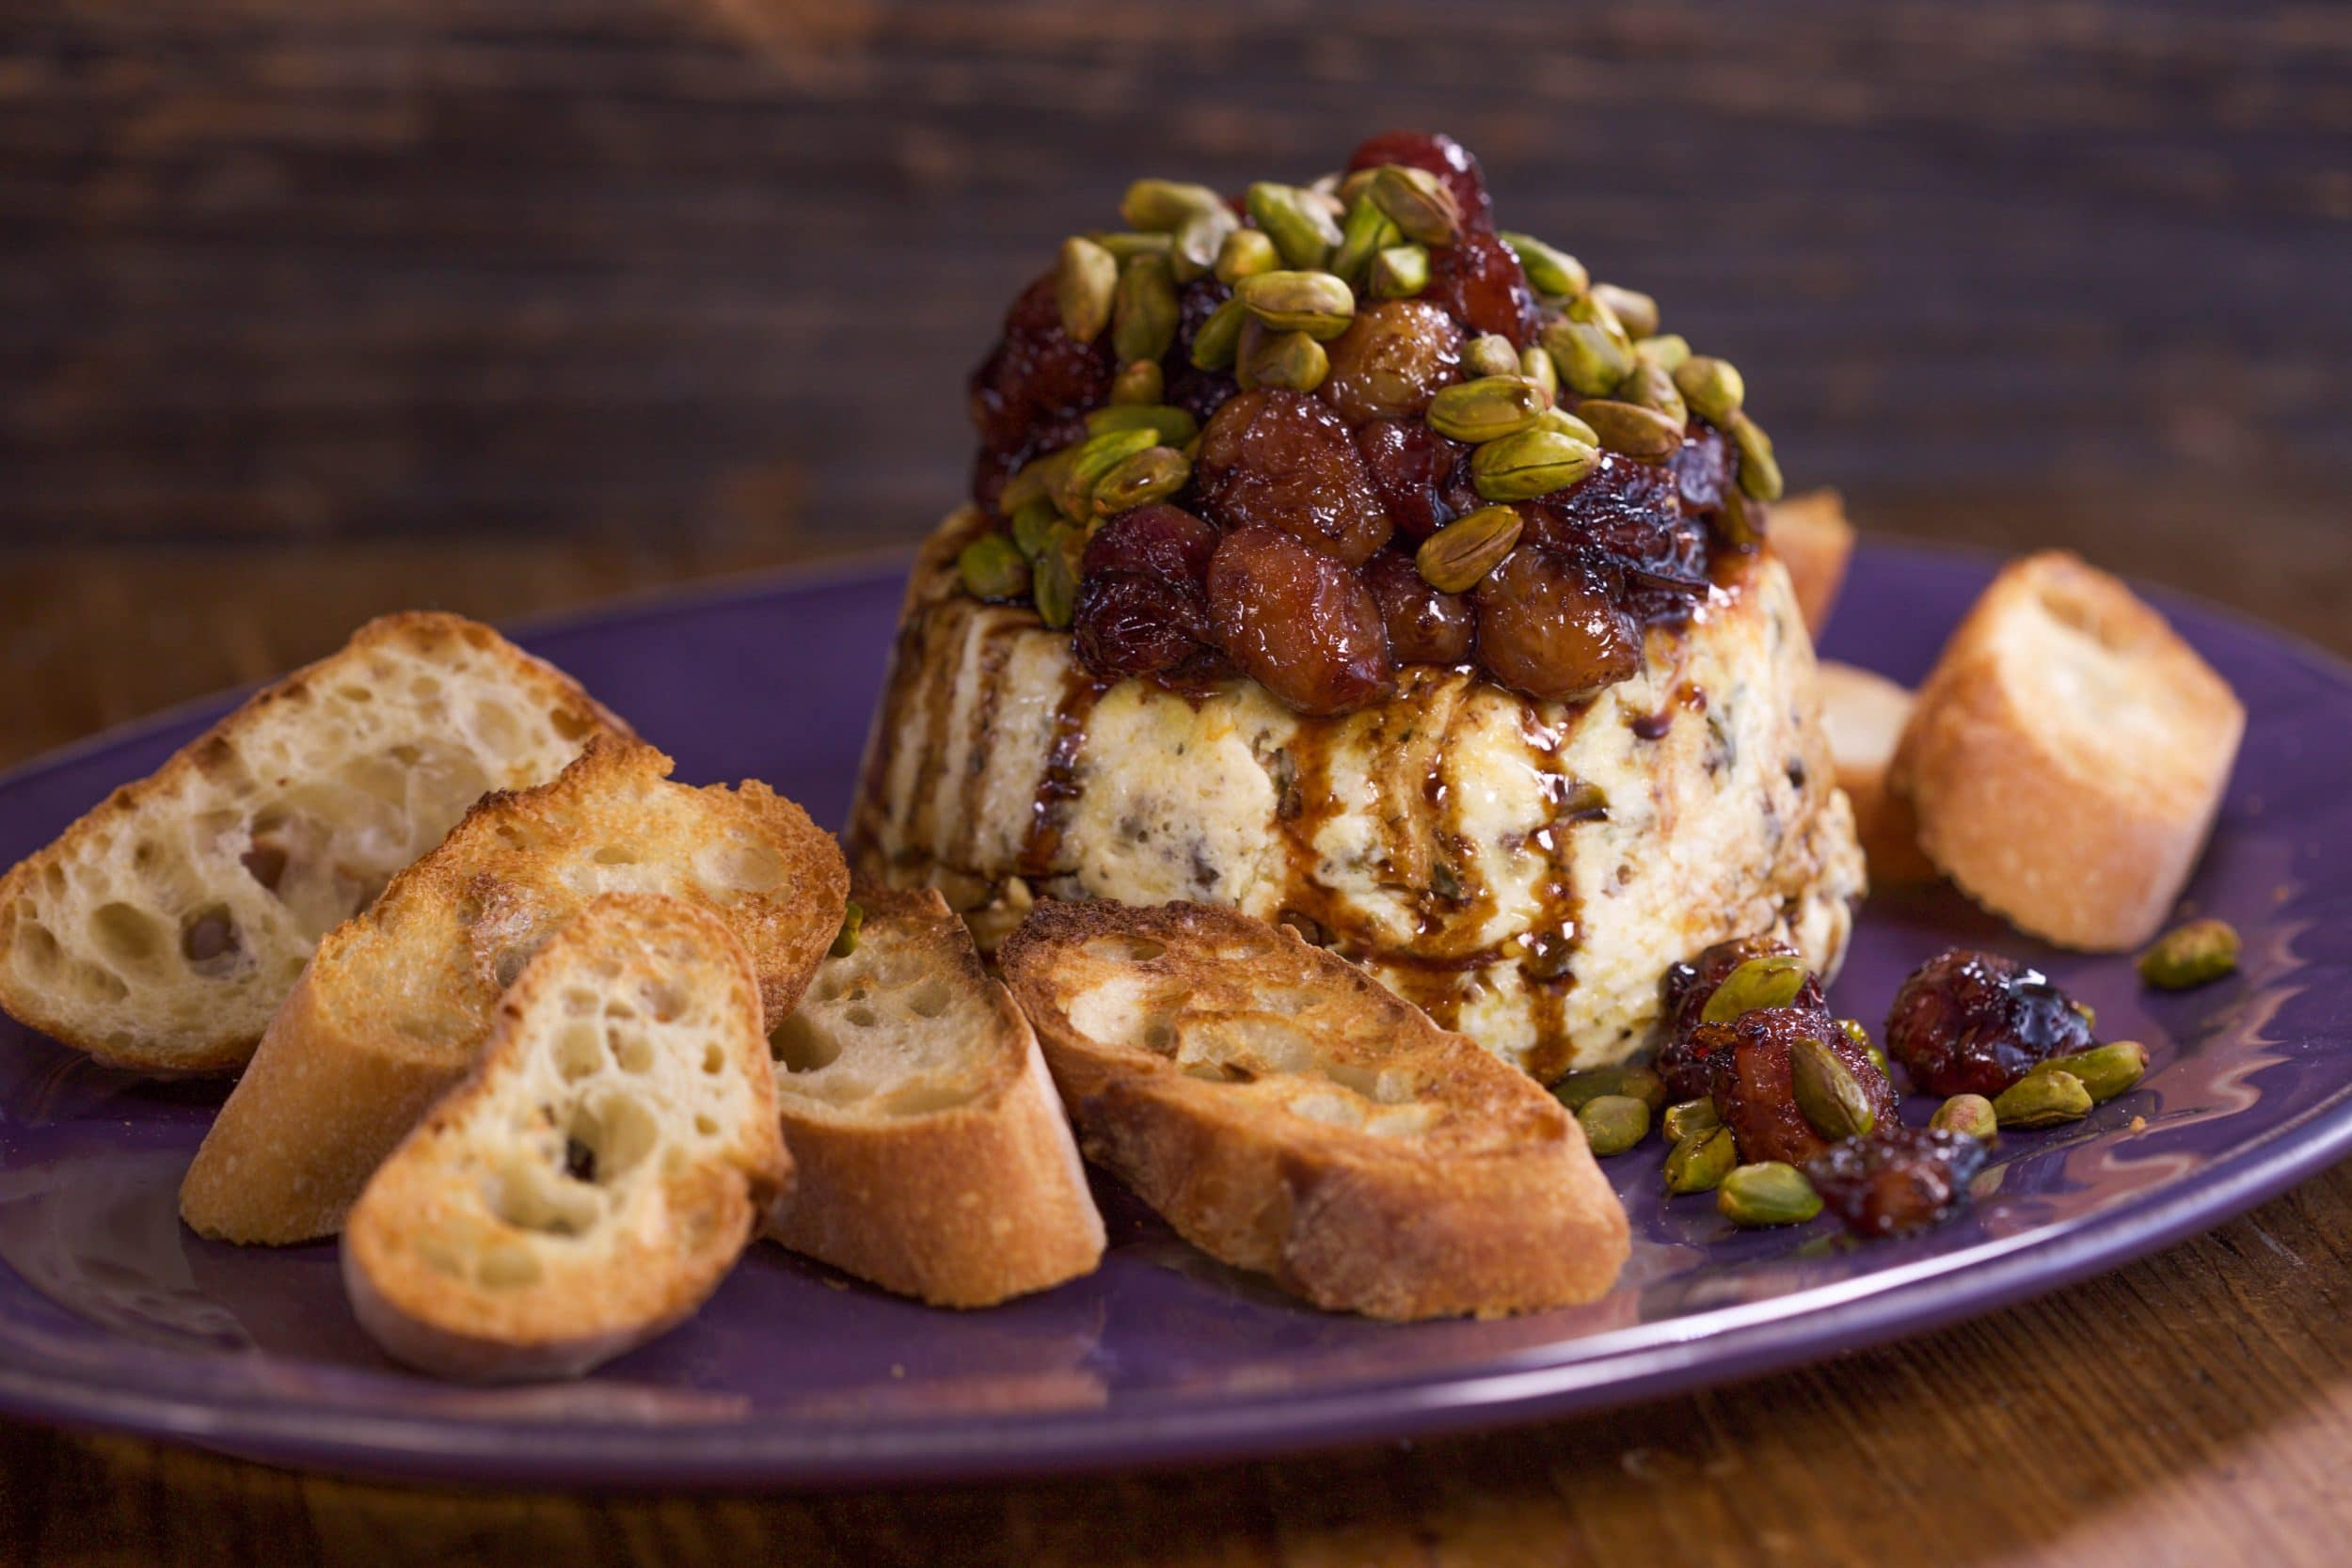 Baked Ricotta with Pistachios